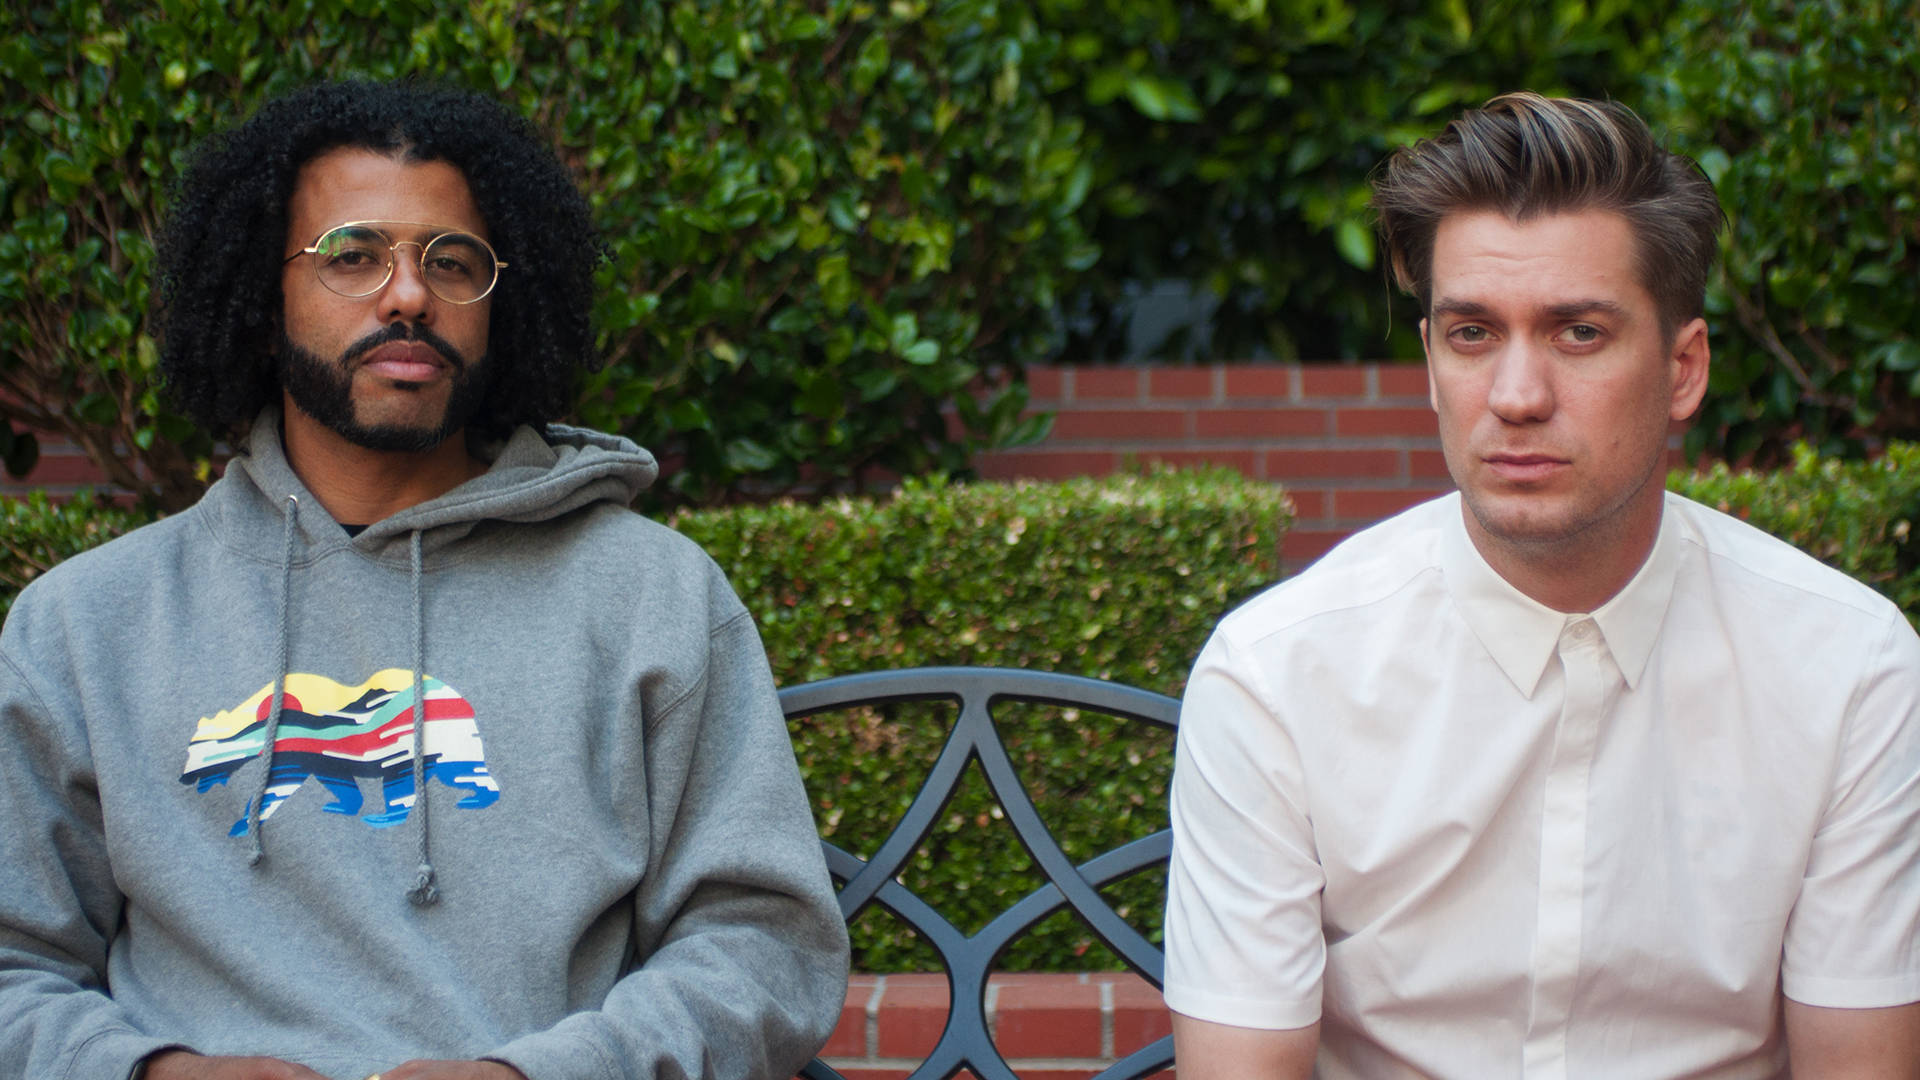 Daveed Diggs (left) and Rafael Casal will host Celebrity Storytime to benefit Children's Fairyland in Oakland on Saturday, Sept. 26. Drew Costley